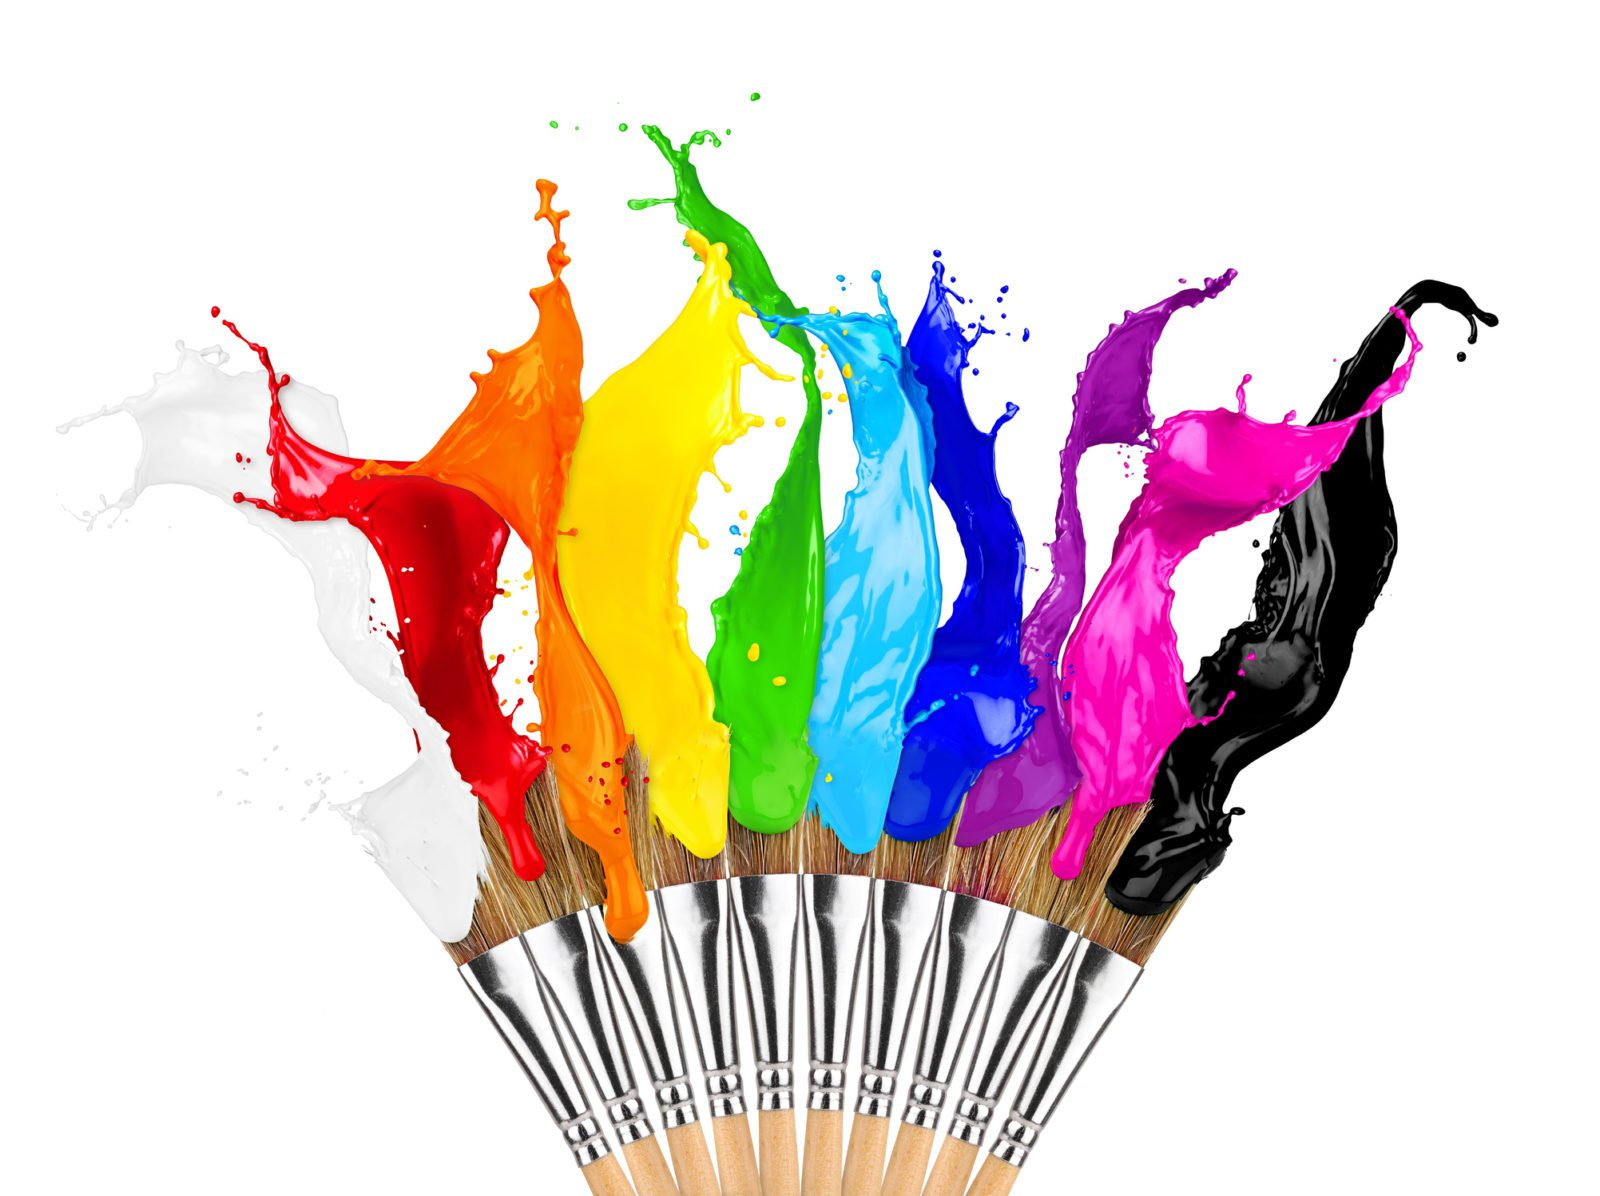 Colorful paint splatter on brushes